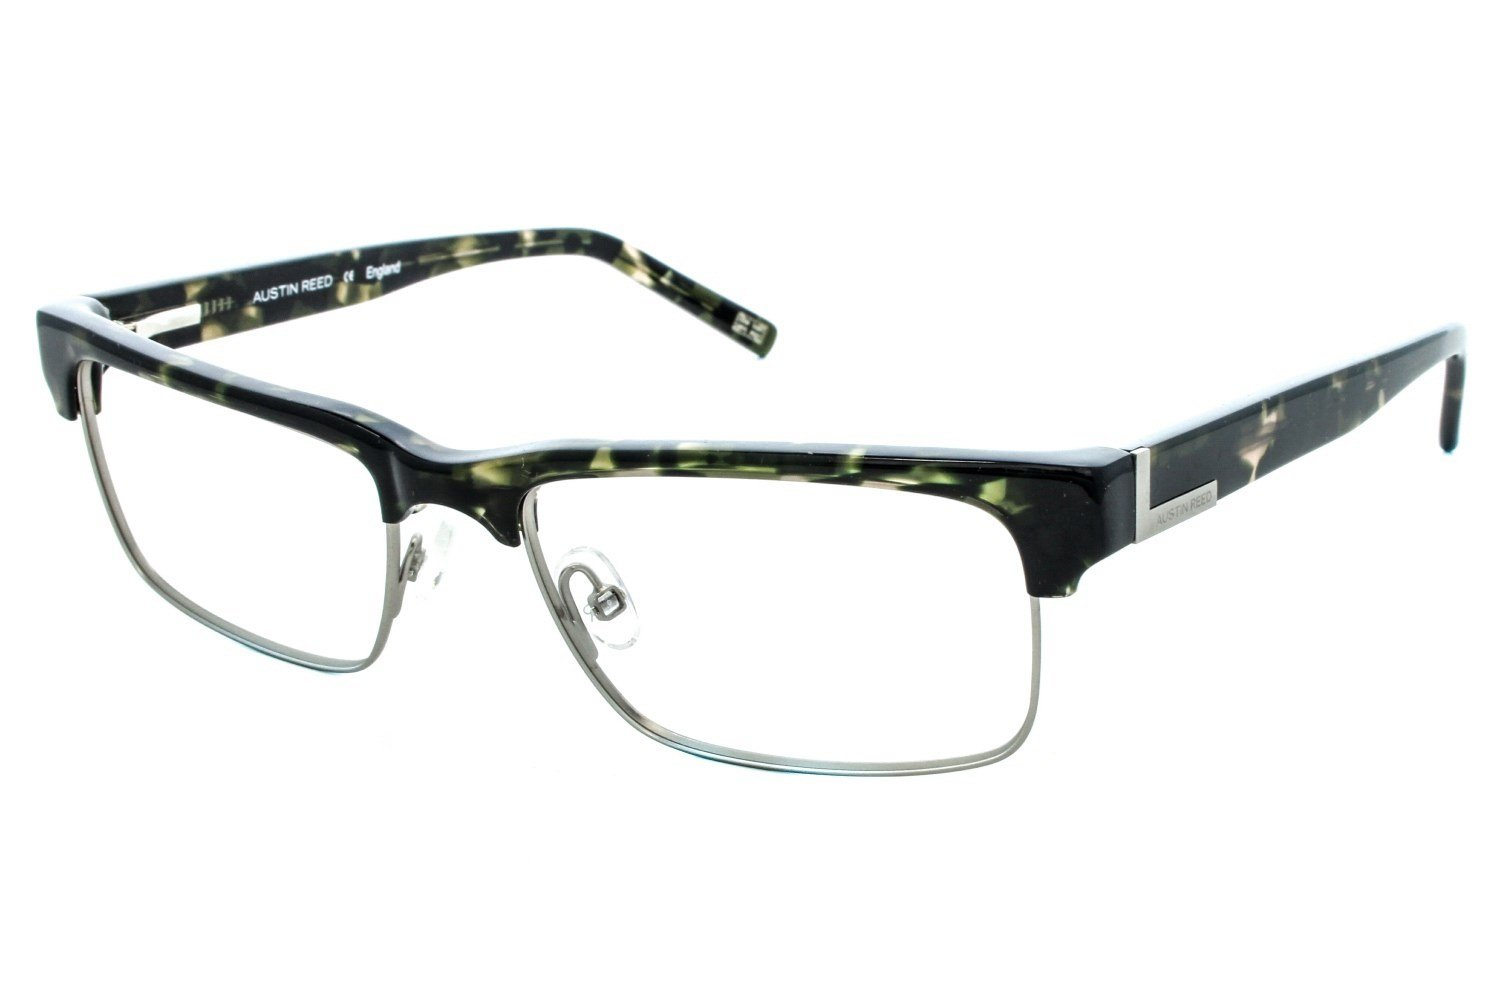 Austin Reed Ar T03 Prescription Eyeglasses Raybantakessunglasses